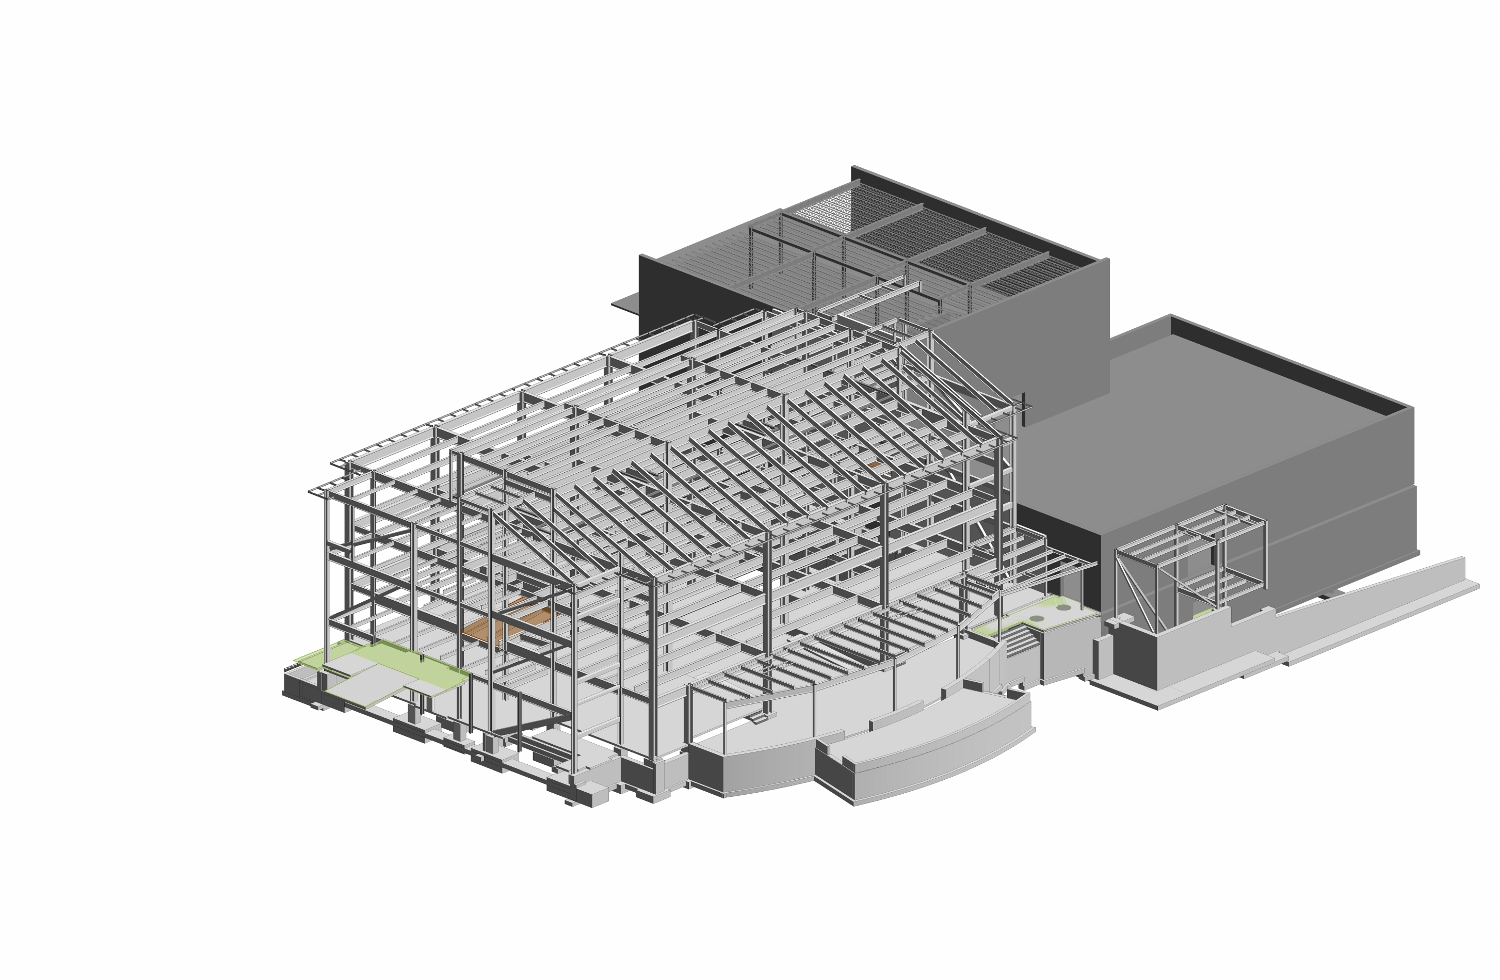 Eastchester HS - Structural Revit Model_View 1 (1500x980).jpg